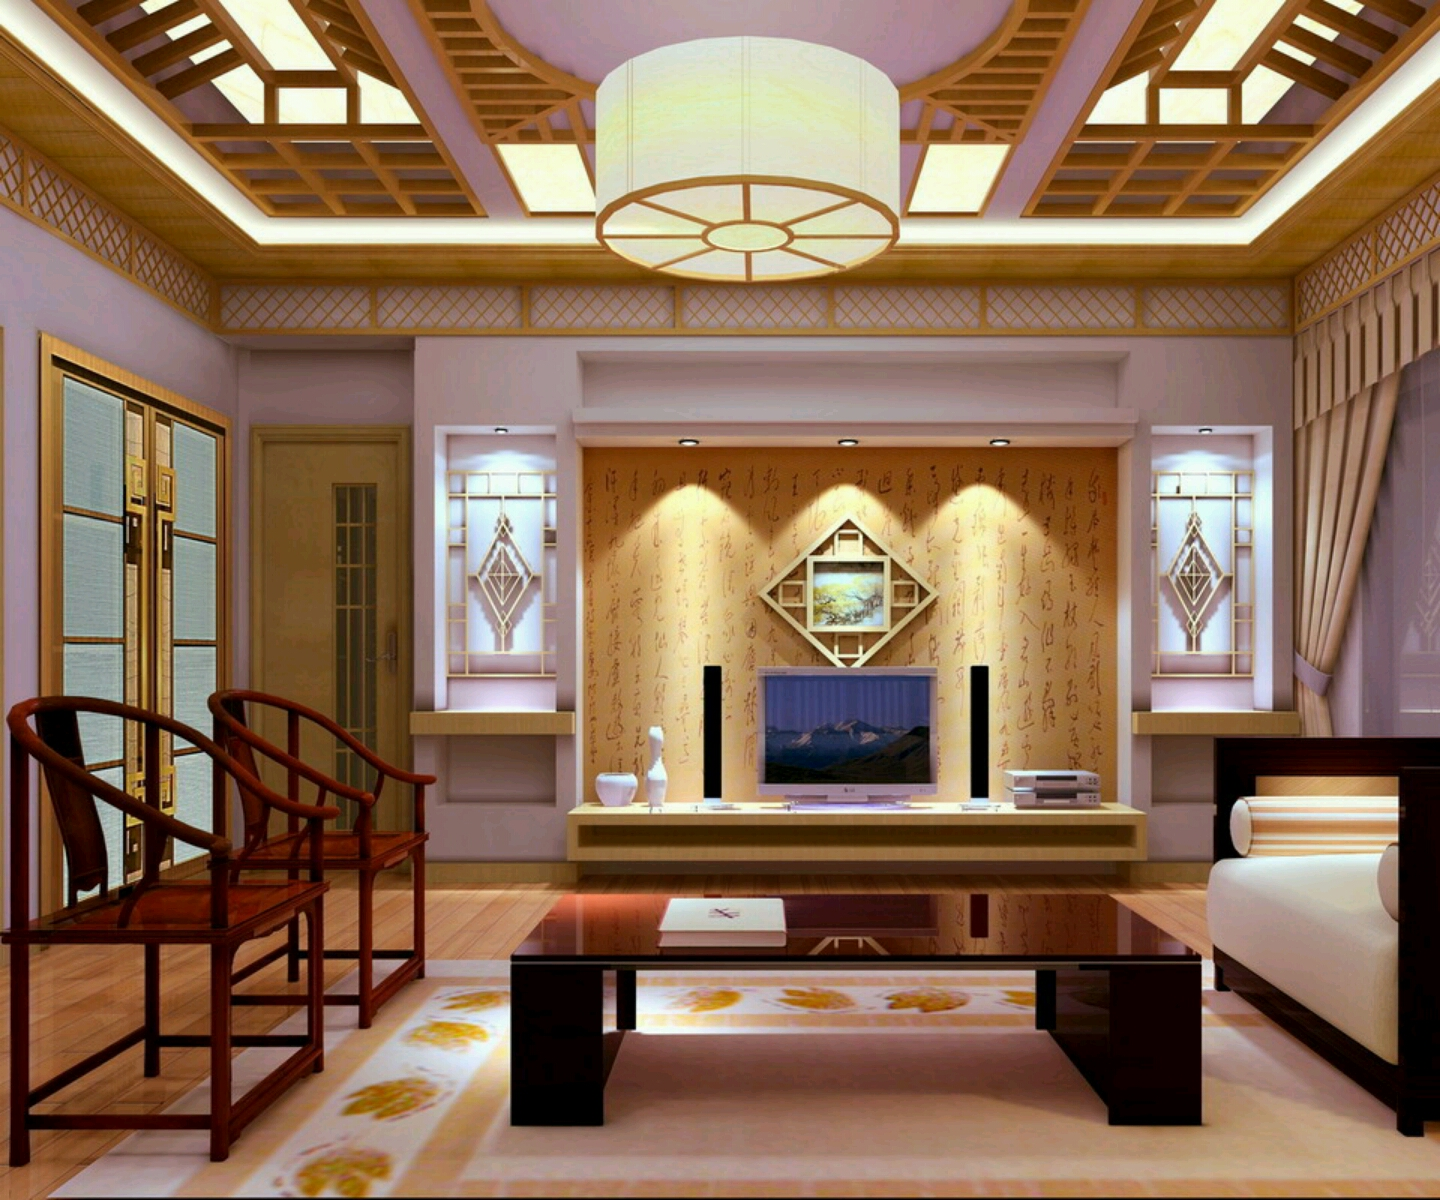 New home designs latest homes interior designs studyrooms for Home interior design room